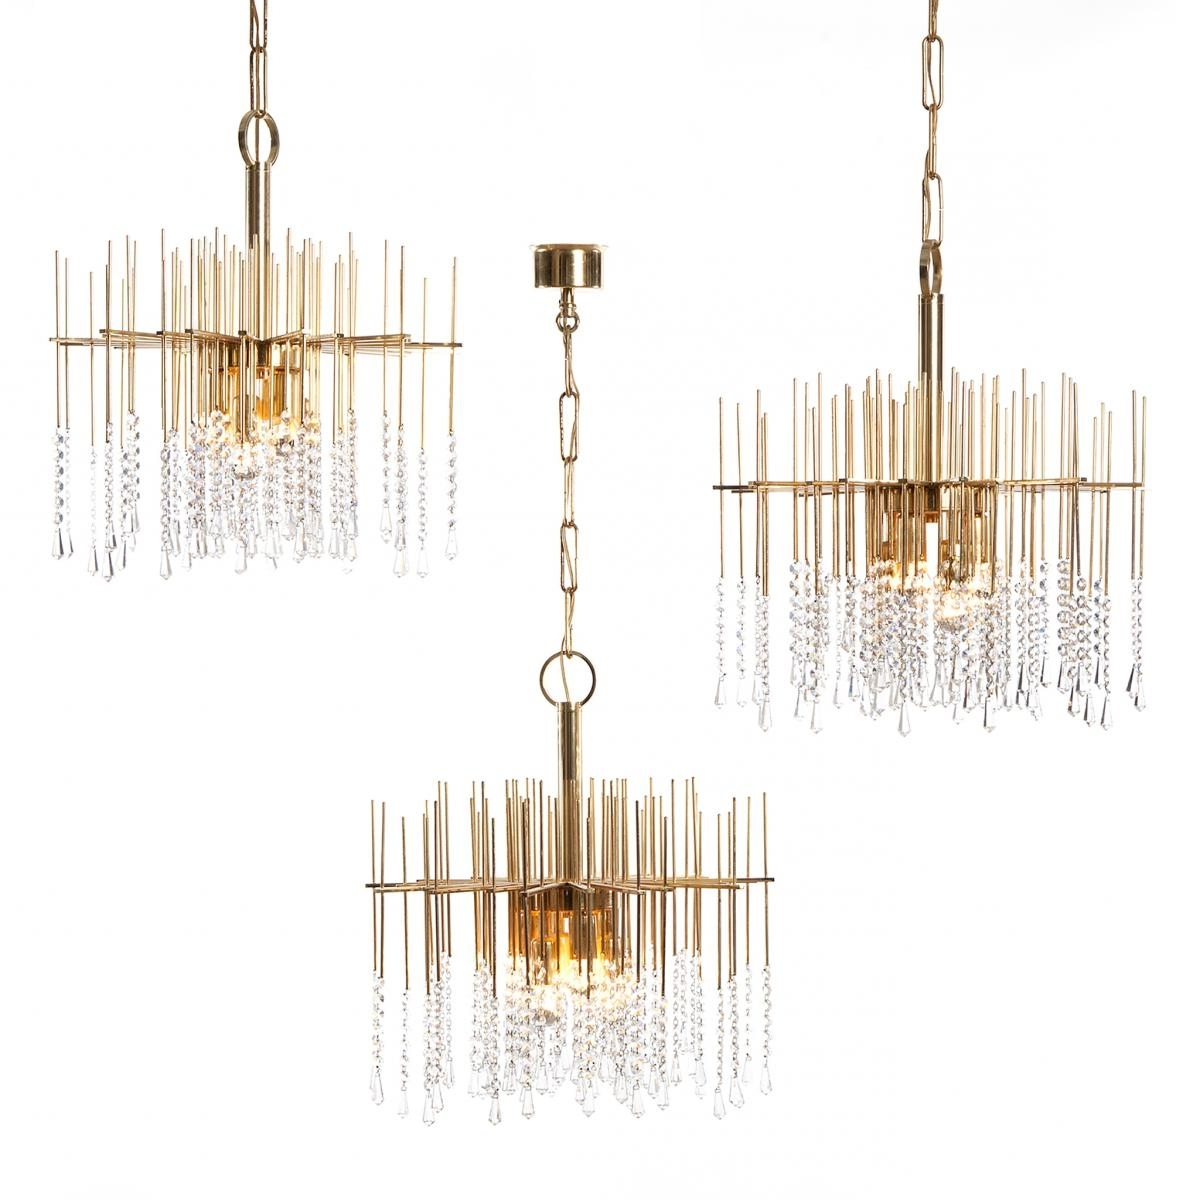 Best And Newest Brass And Crystal Chandeliers Regarding Six Light Gilt Brass And Crystal Chandelier Light, 1960S For Sale At (View 1 of 20)